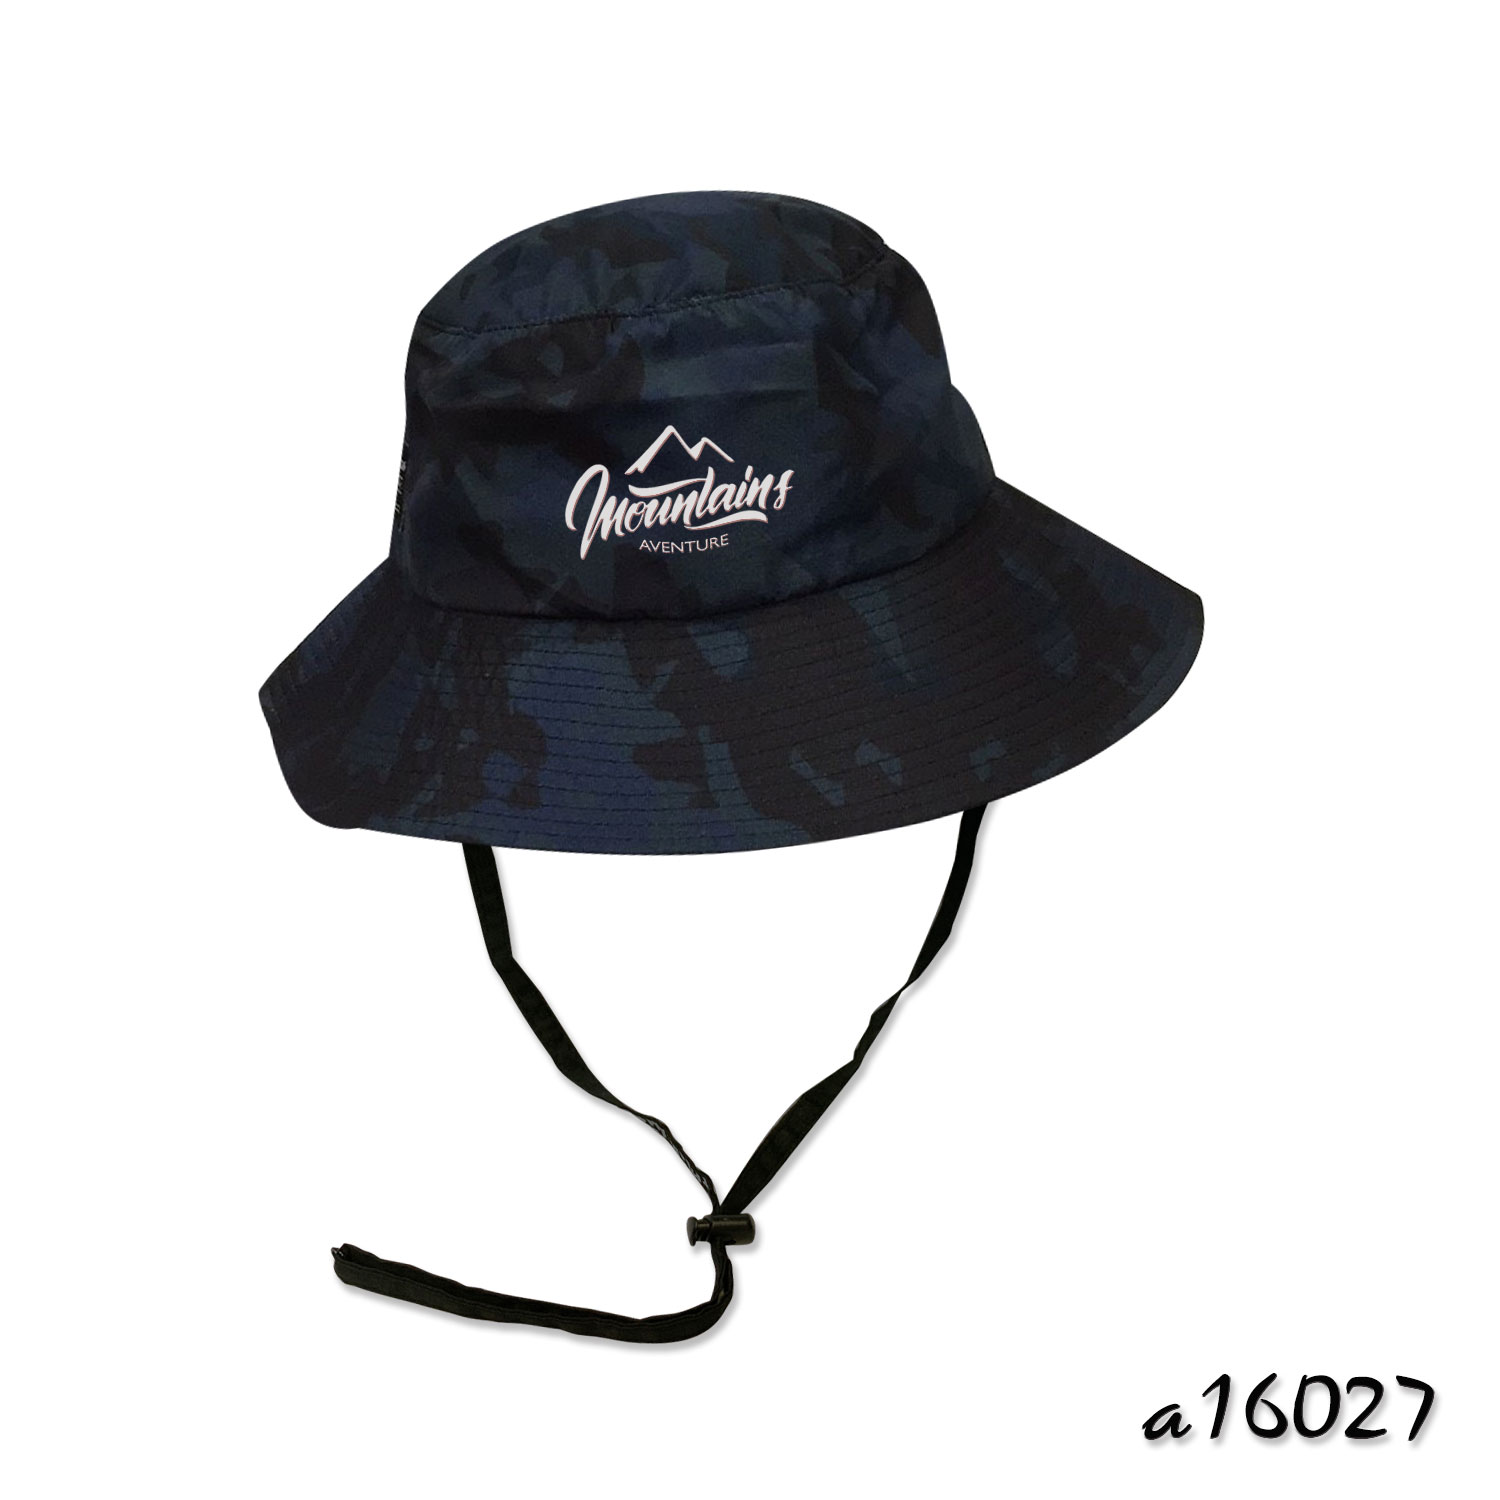 Camouflage printed mountain hat a16027